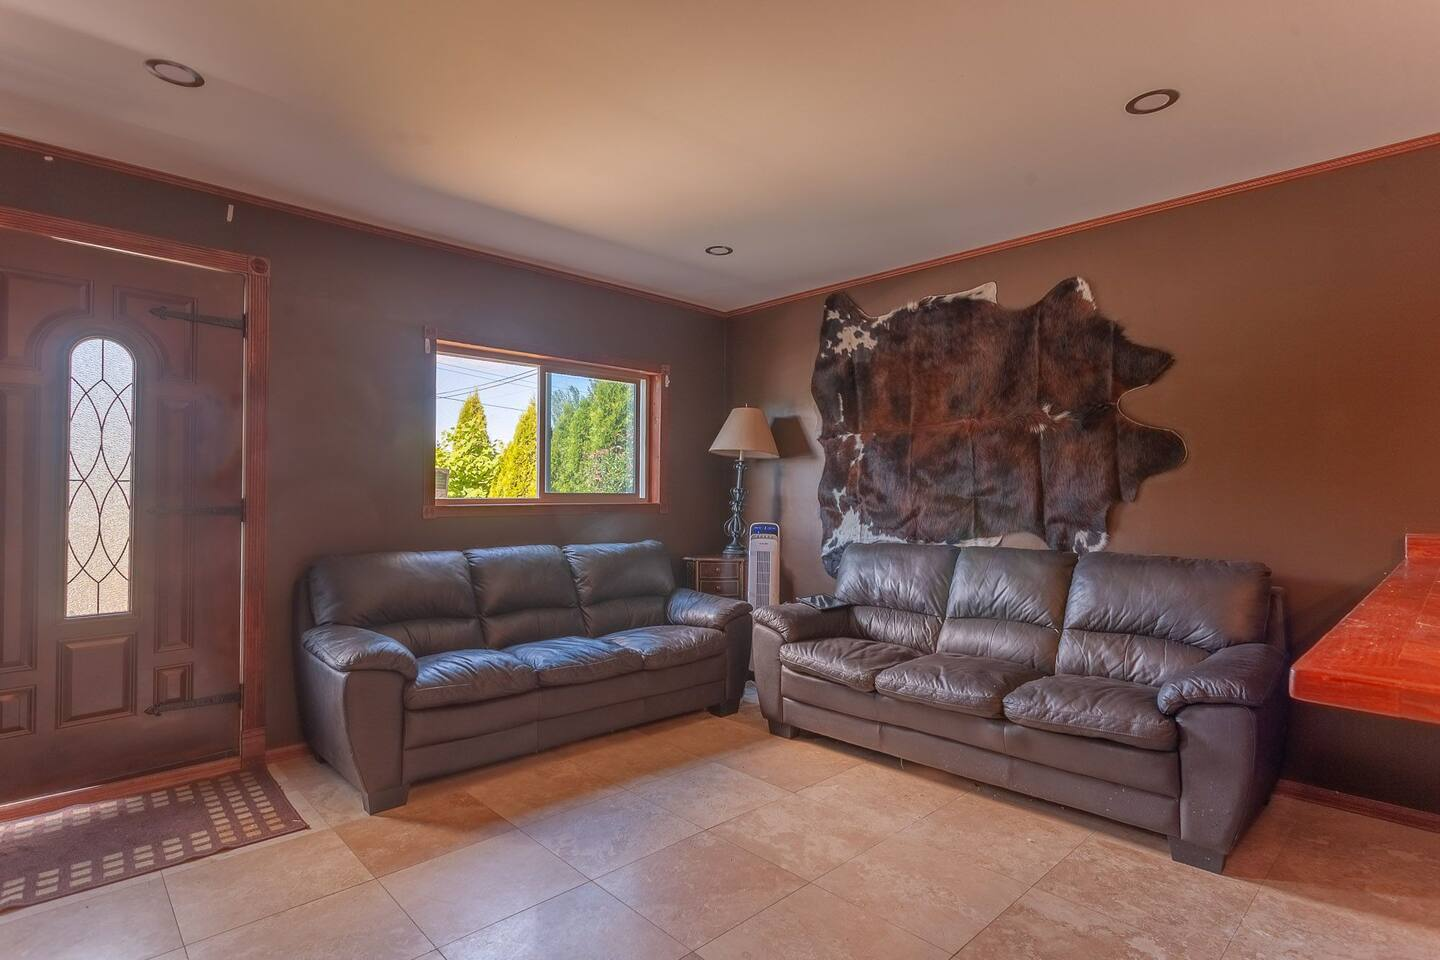 Living room with heated floors, leather couches, 80inch LCD flat screen TV, and bar fridge